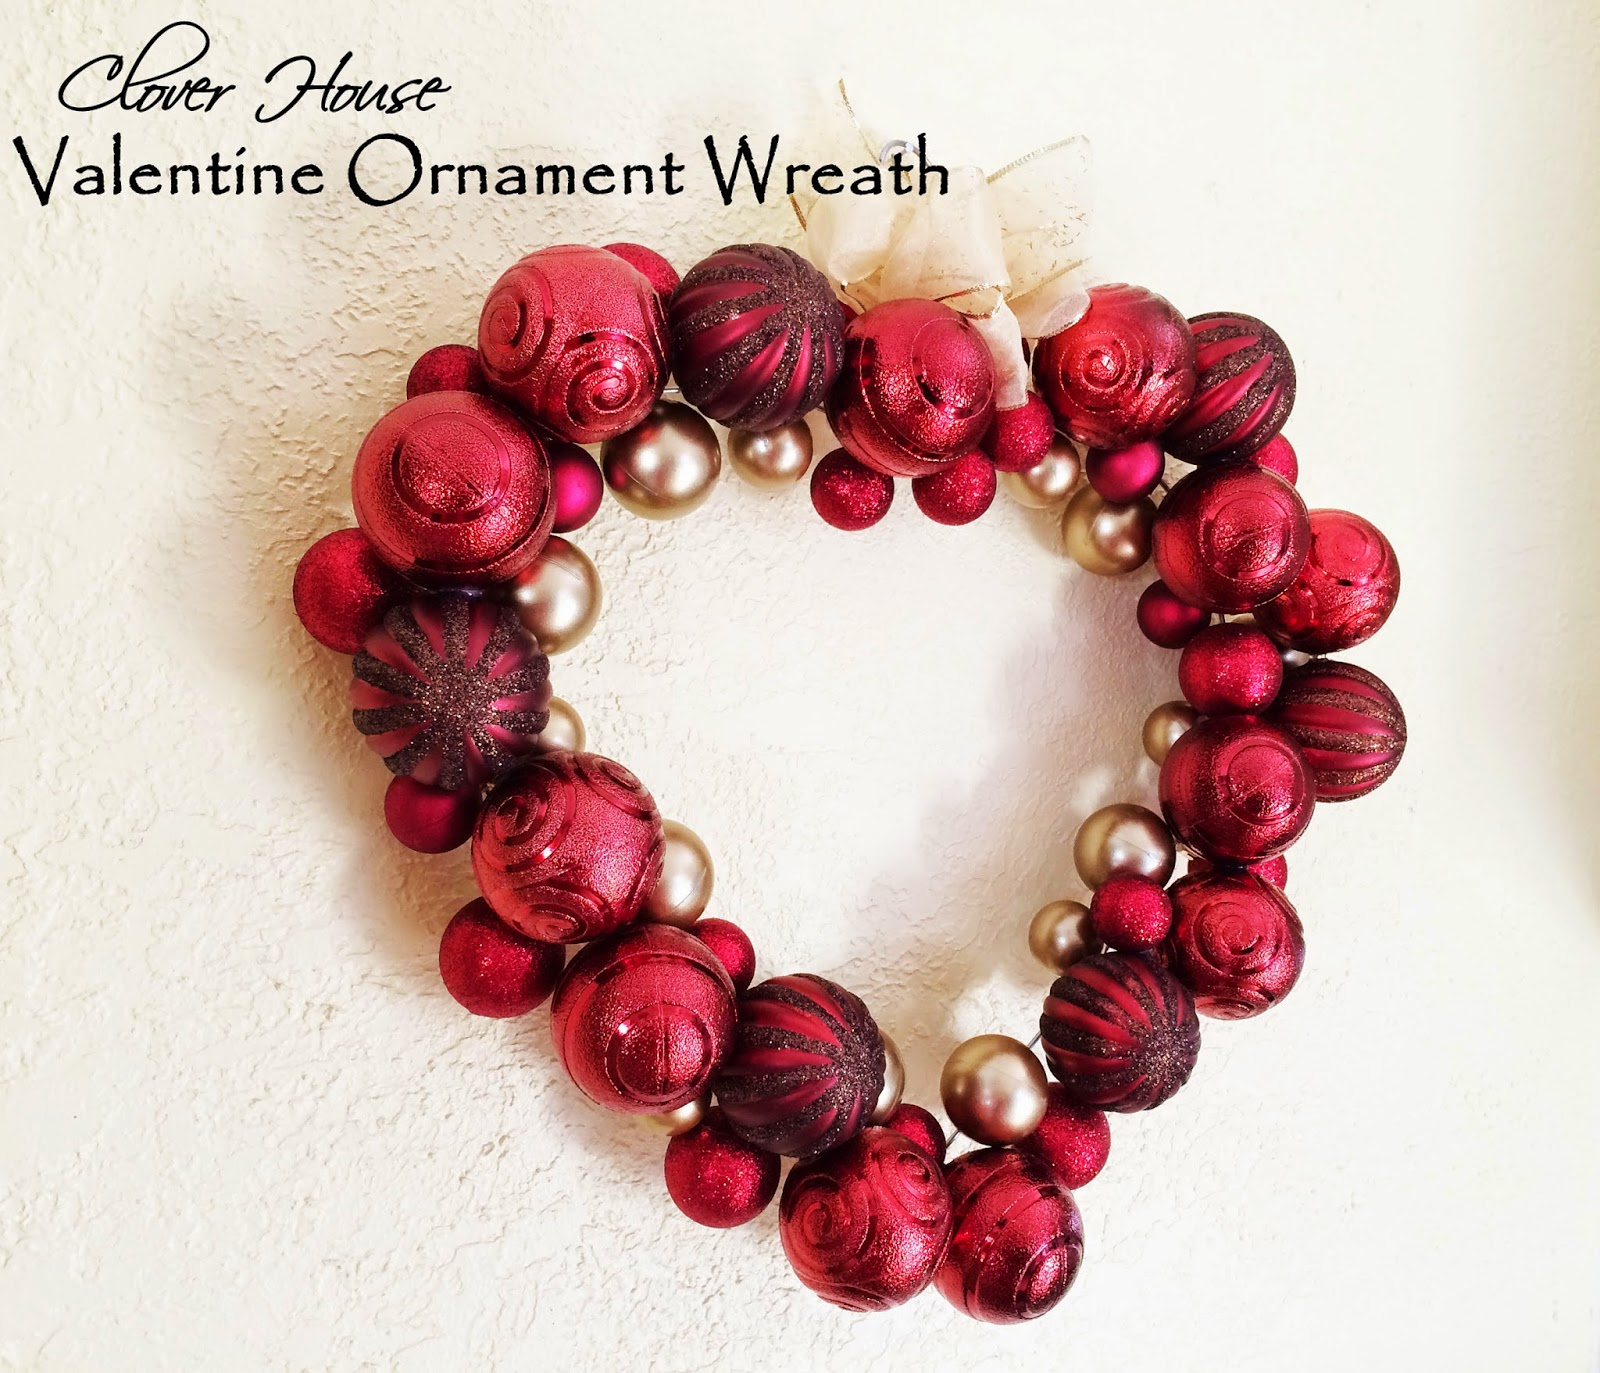 Clover House Valentine Ornament Wreath Using A Clothes Hanger